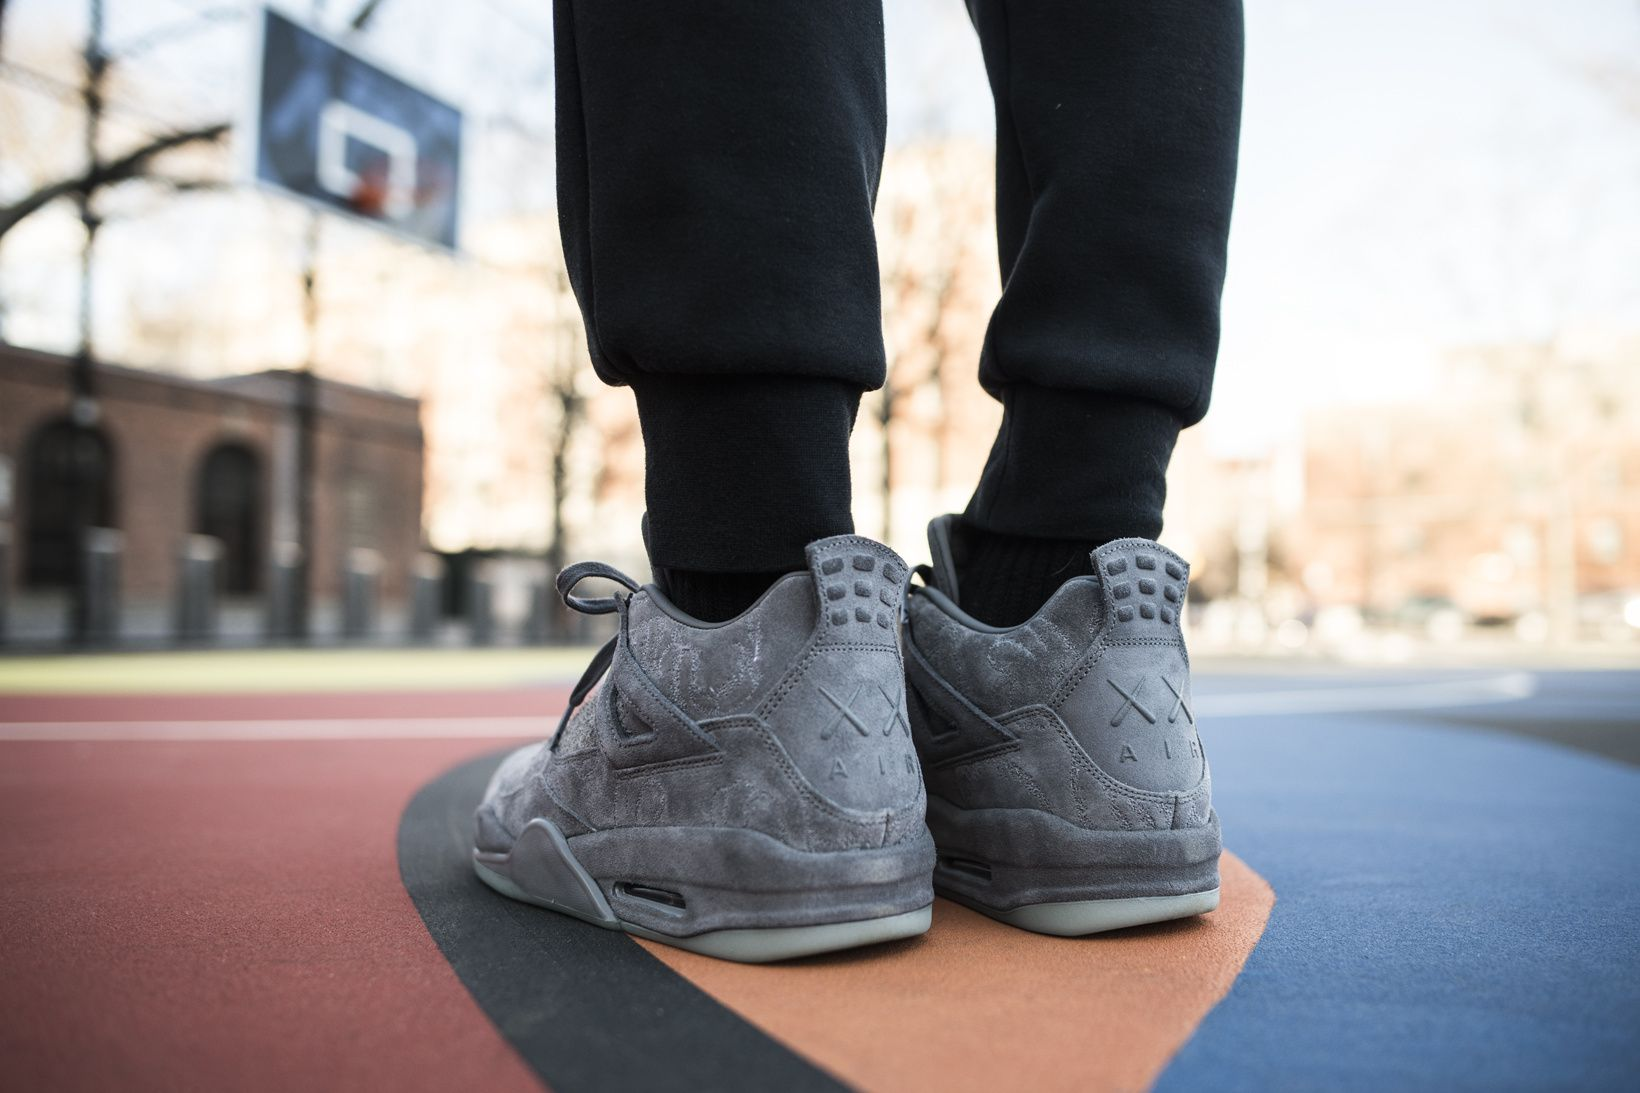 ca1630aed959f8 EXCLUSIVE  Here s Your Best Look Yet at the KAWS x Air Jordan 4 in ...